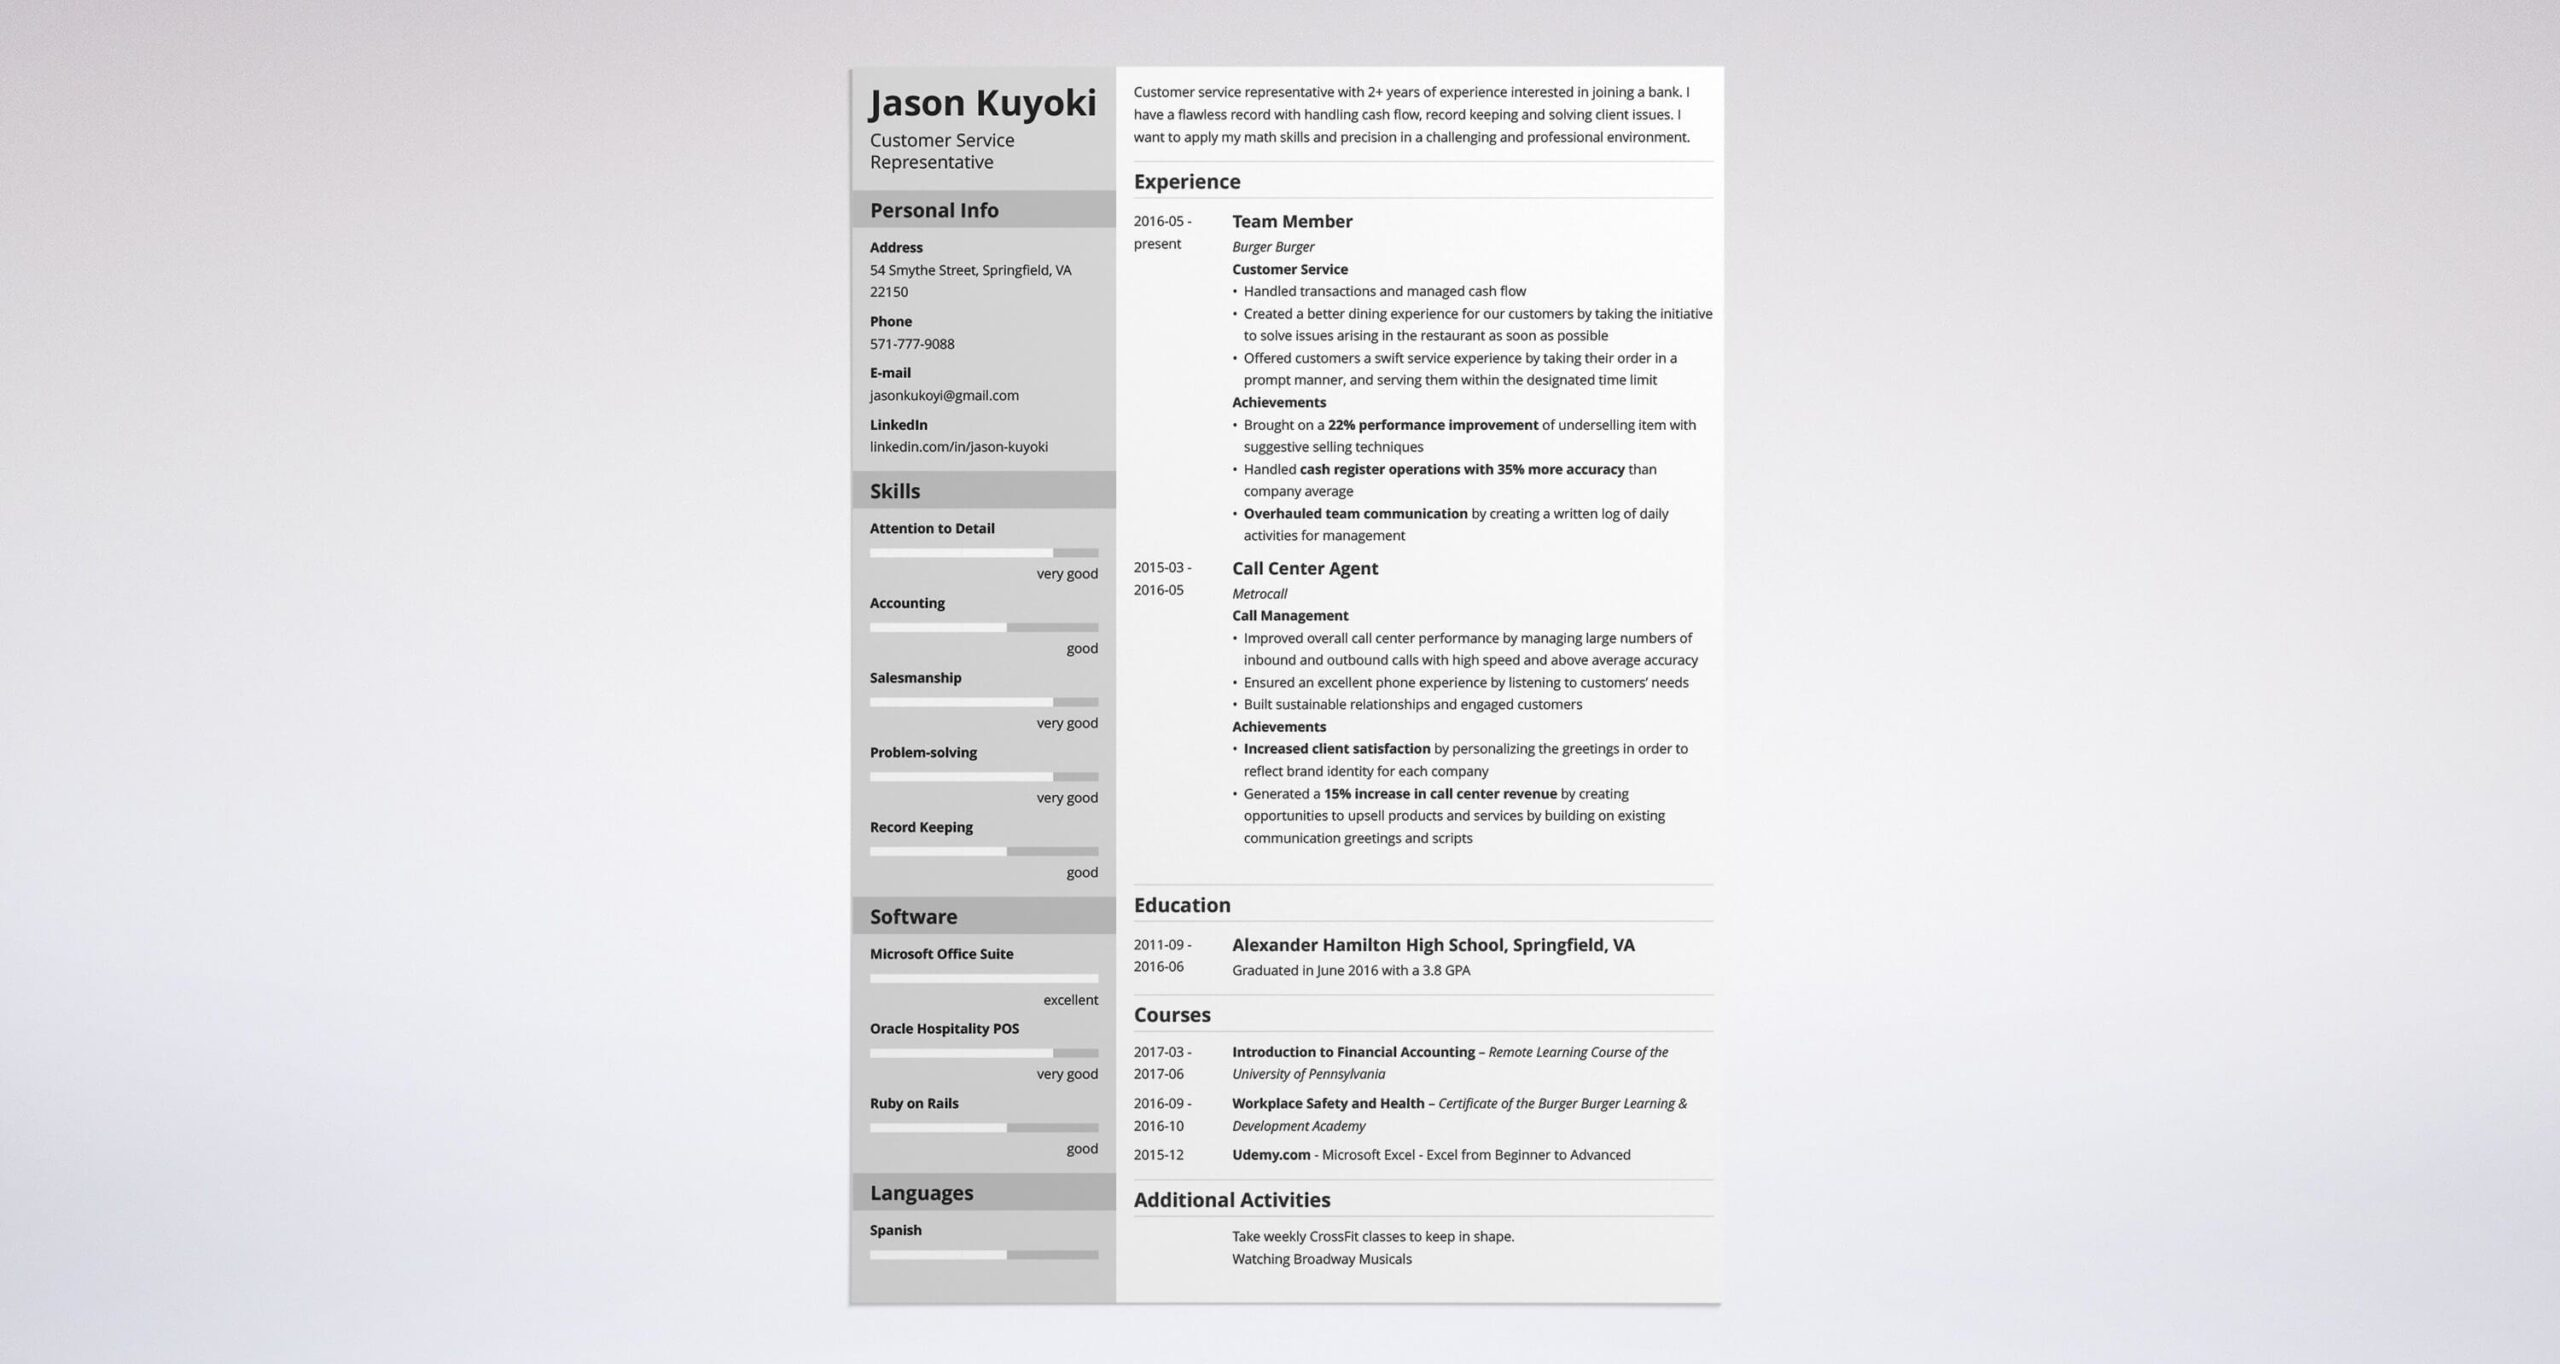 bank resume examples job description no experience format for freshers sample computer Resume Bank Resume Format For Freshers